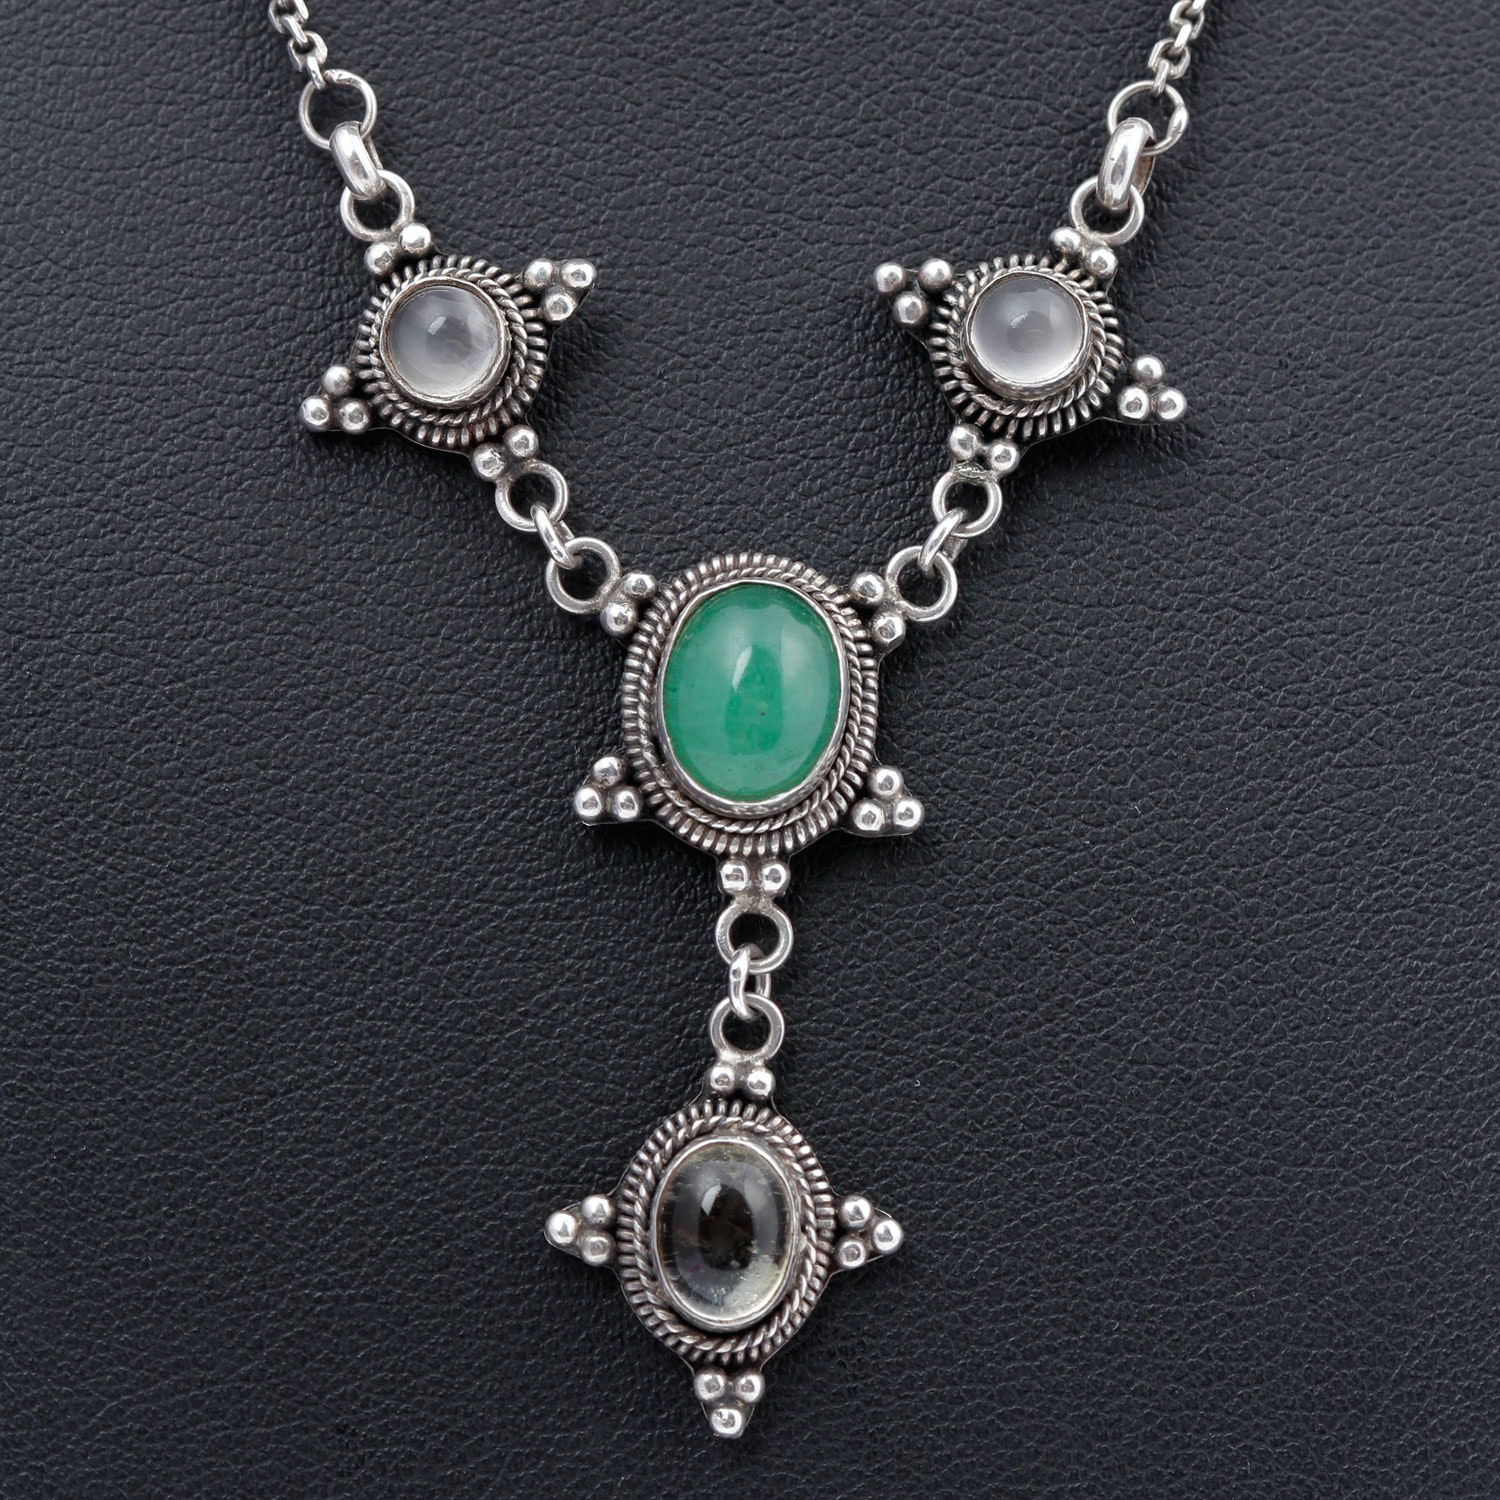 Sterling Silver Chrysoprase and Quartz Pendant Necklace